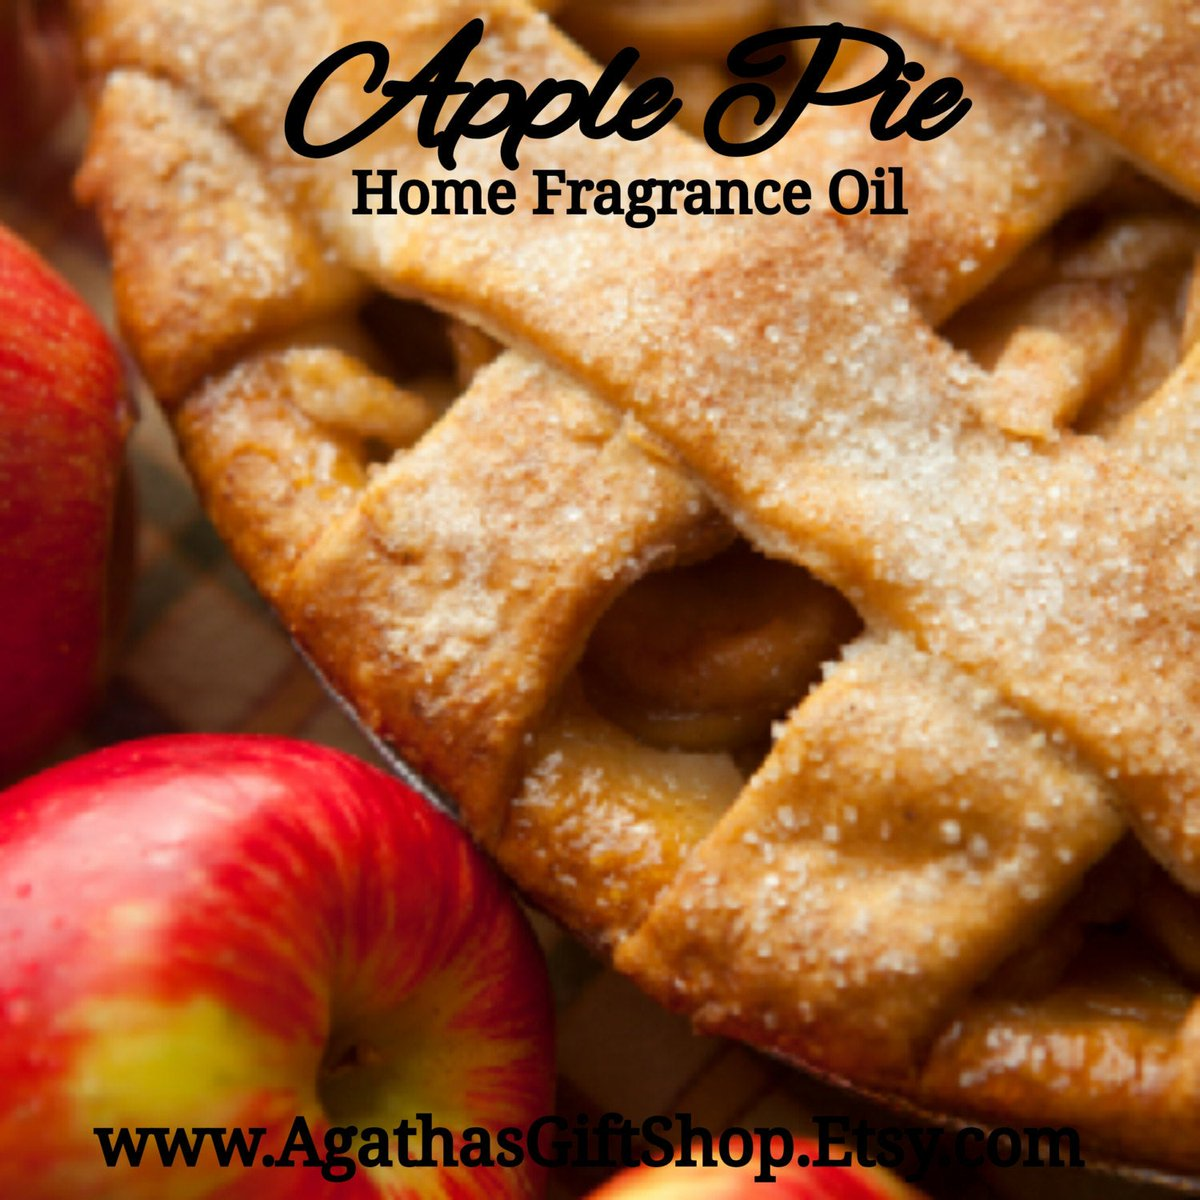 Apple Pie Home Fragrance Diffuser Warmer Aromatherapy Burning Oil https://t.co/0qVpjP39Z0 #Incense #CyberMonday #Wedding #GiftShopSale #HomeFragranceOil #PerfumeBodyOils #AromatherapyOil #Etsy #BlackFriday #HerbalRemedies #AromaOils https://t.co/Q0dOQnVISN